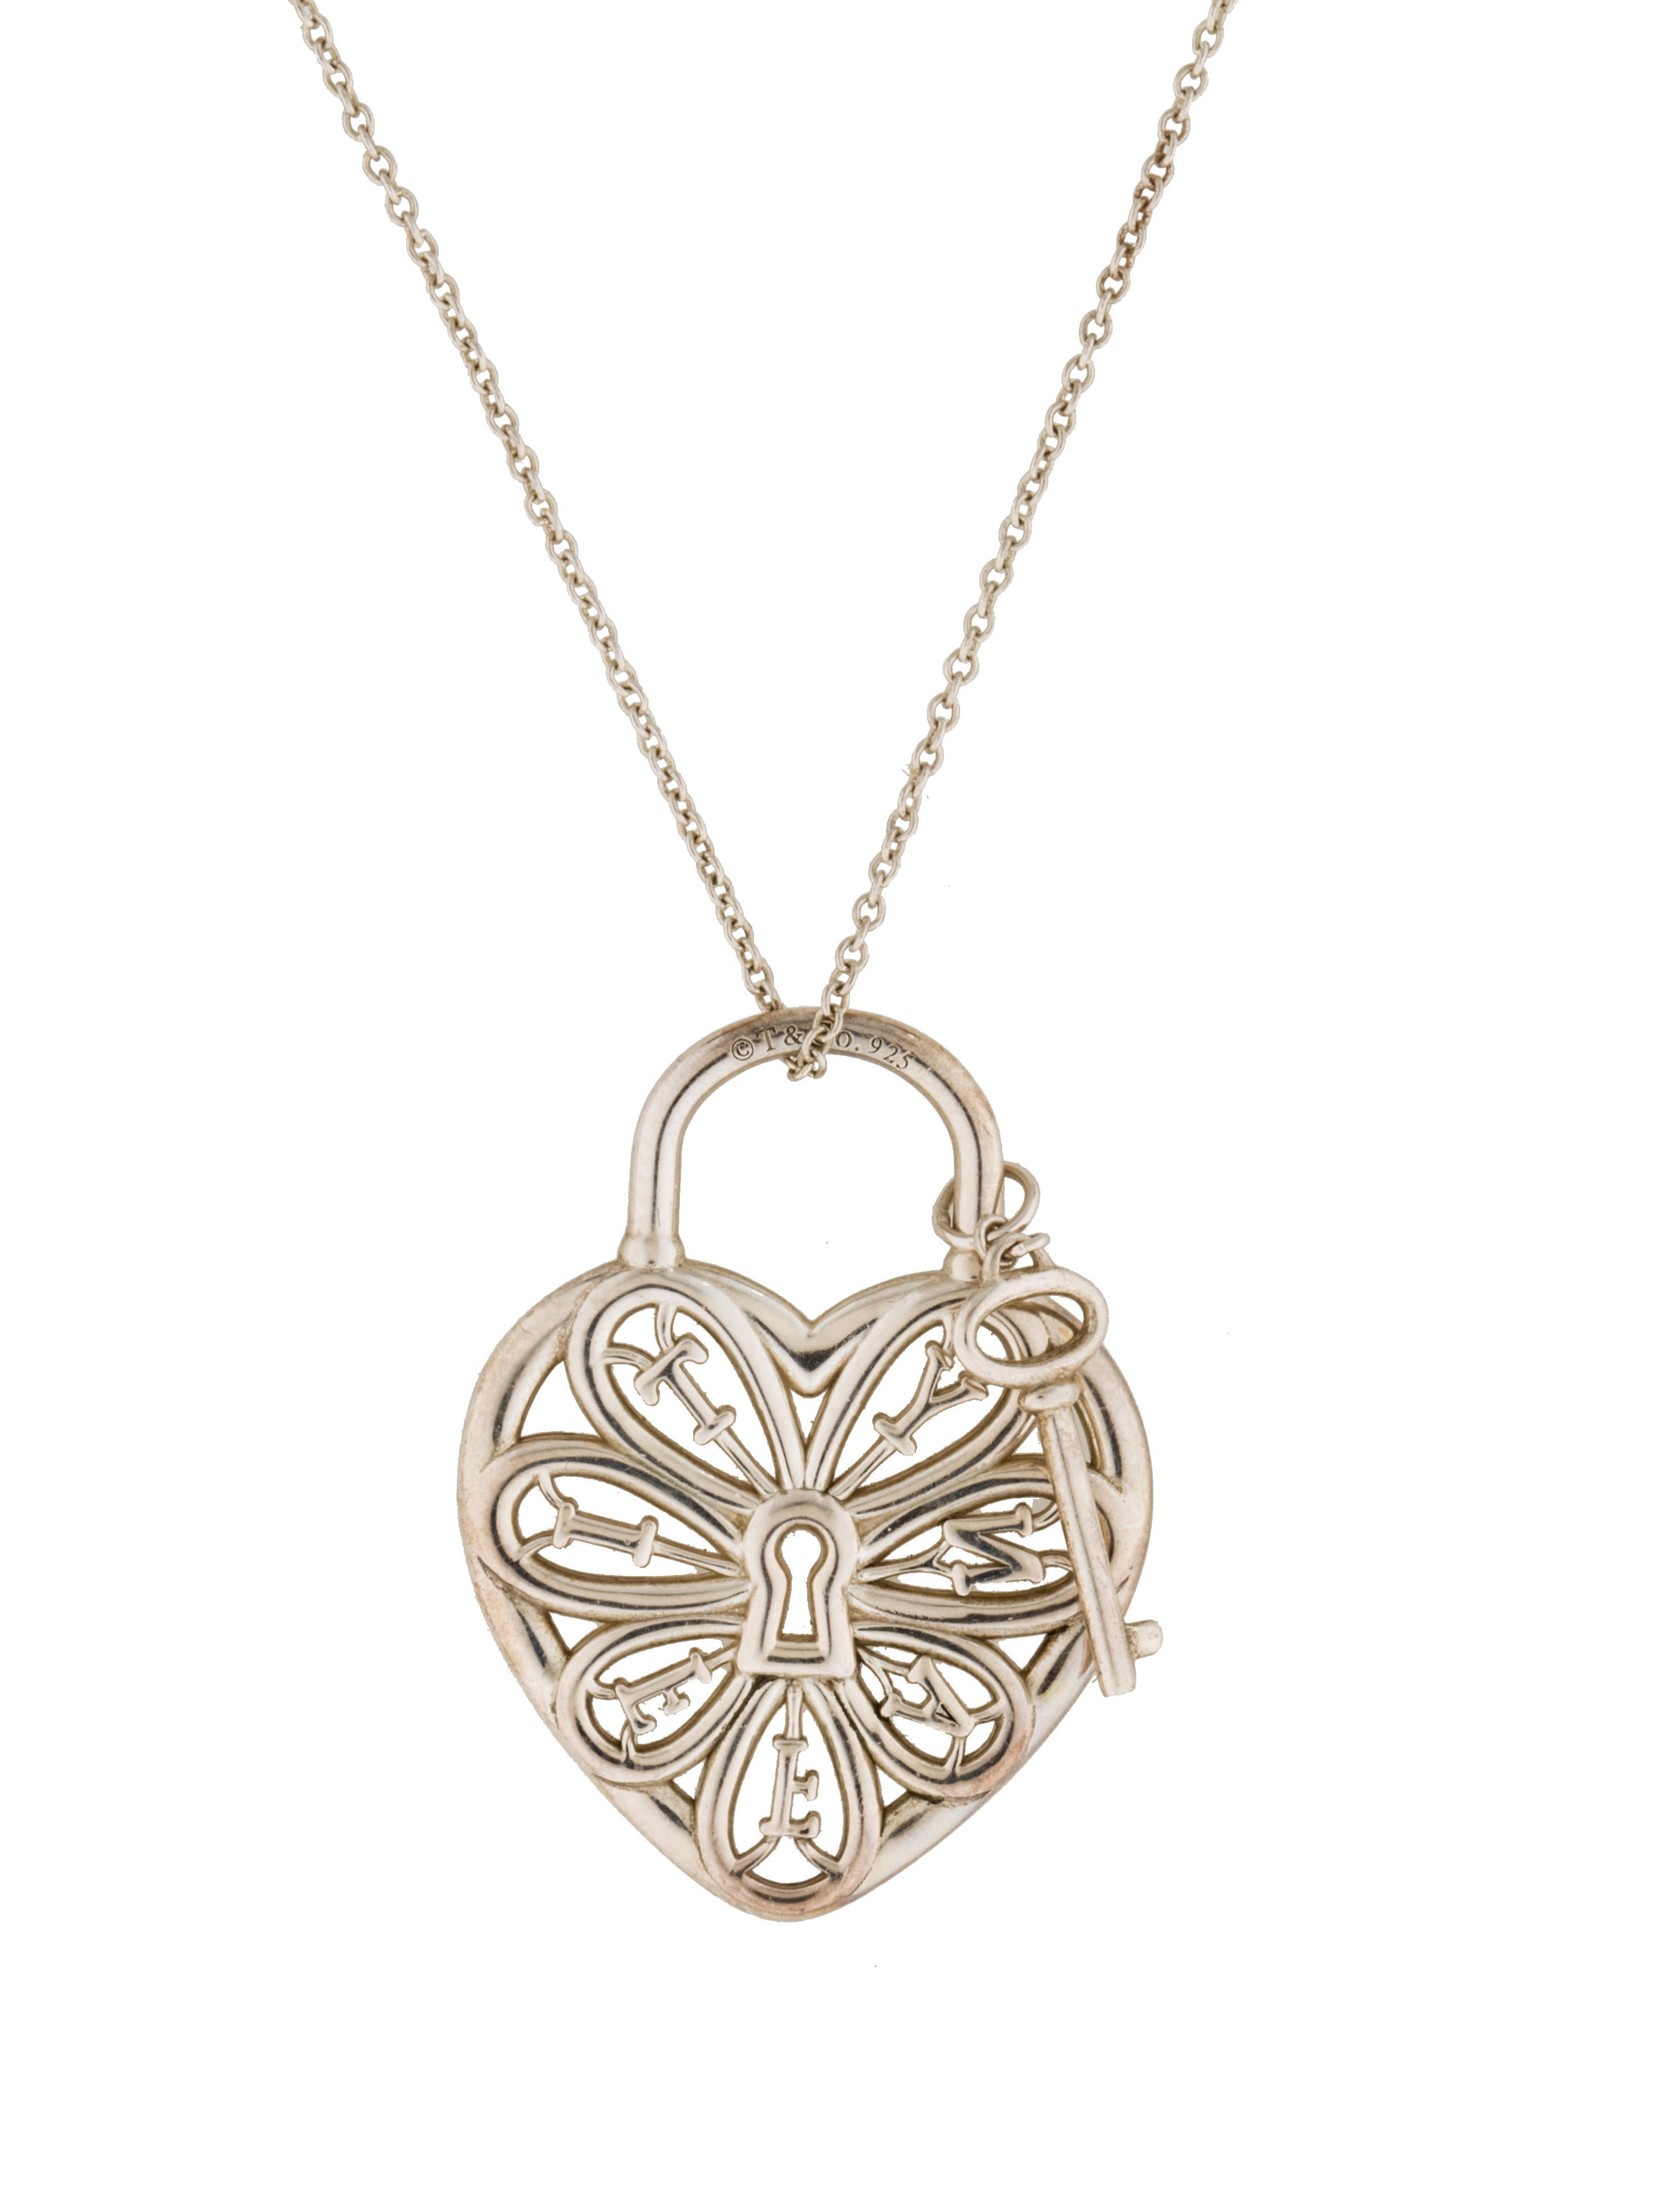 Beautiful tiffany filigree heart necklace with key jewellrys tiffany co filigree heart lock key pendant necklace aloadofball Choice Image